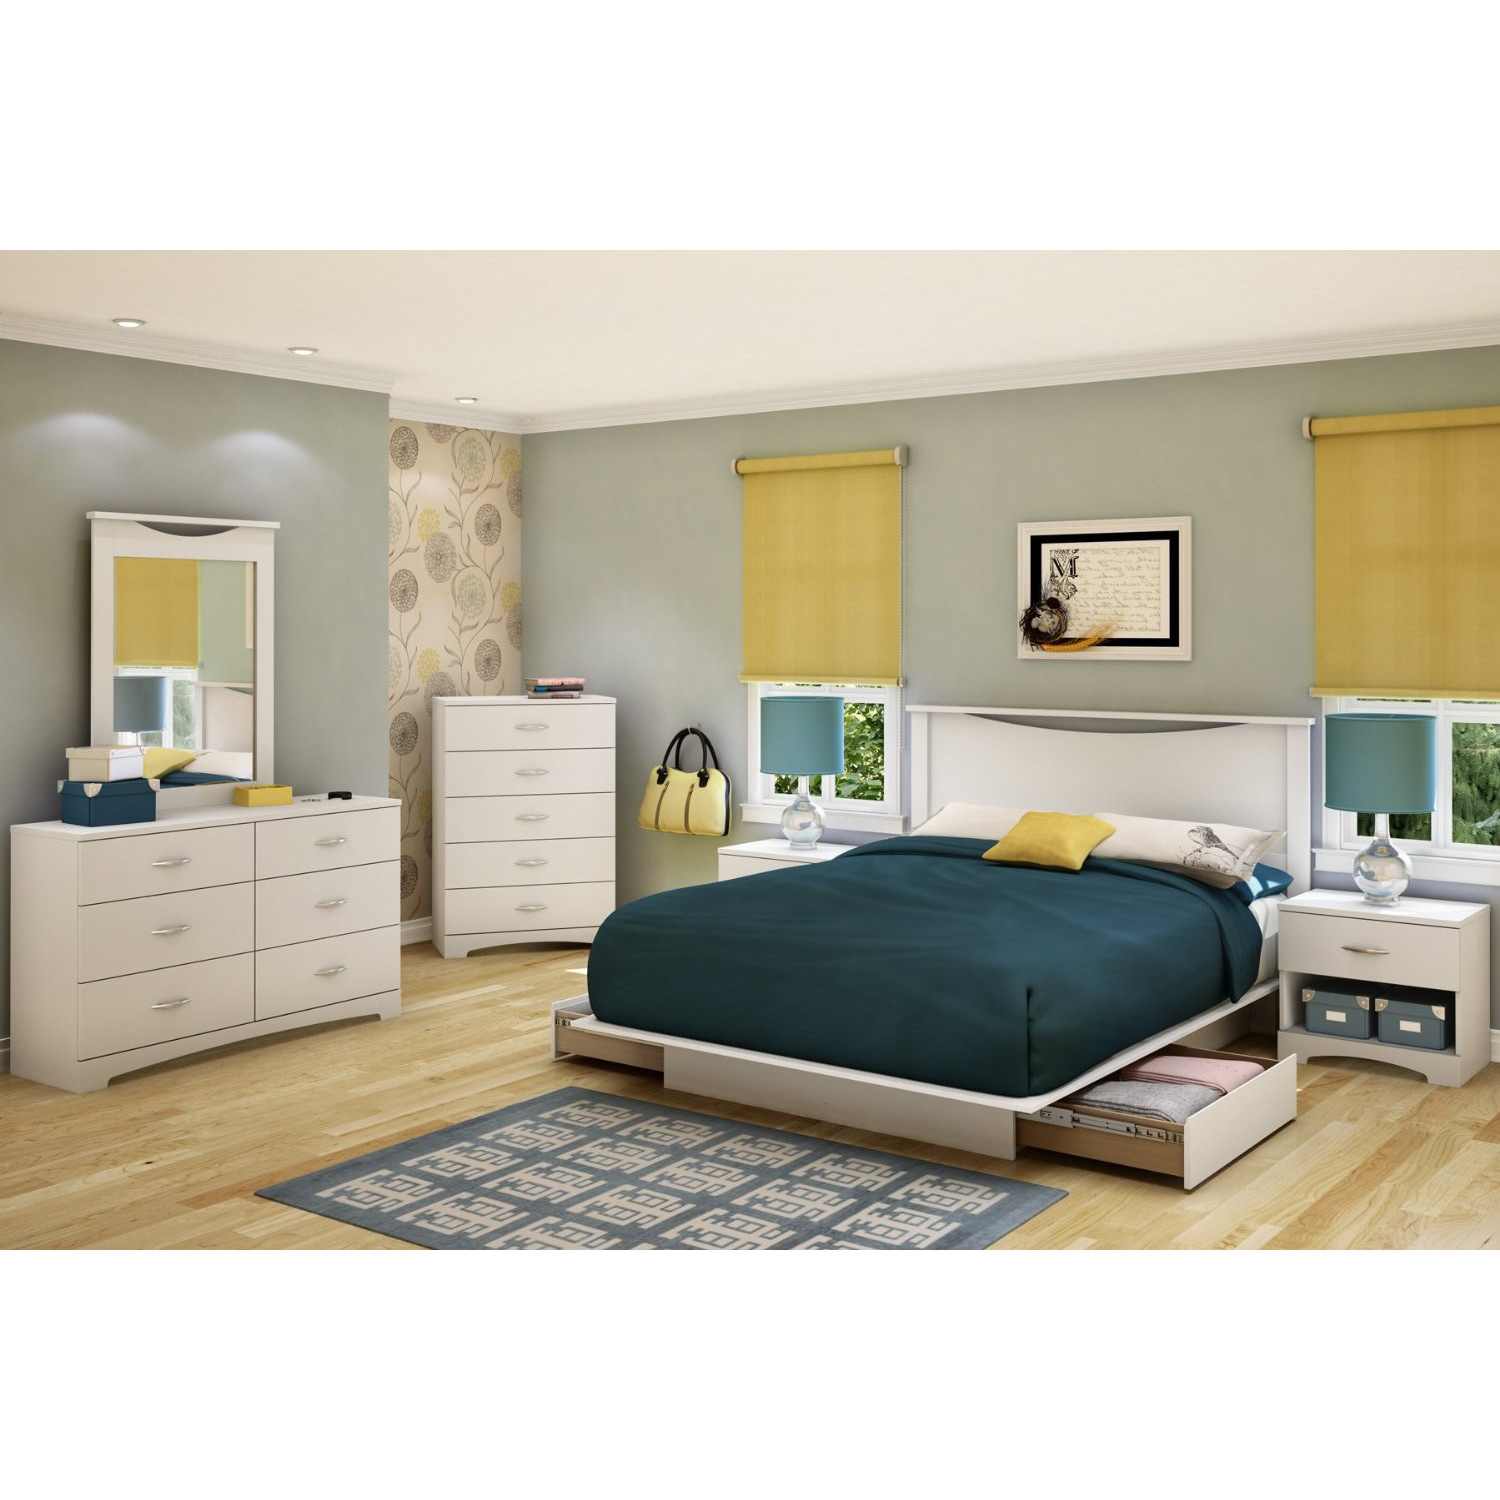 Full size White Modern Platform Bed Frame with 2 Storage Drawers ...